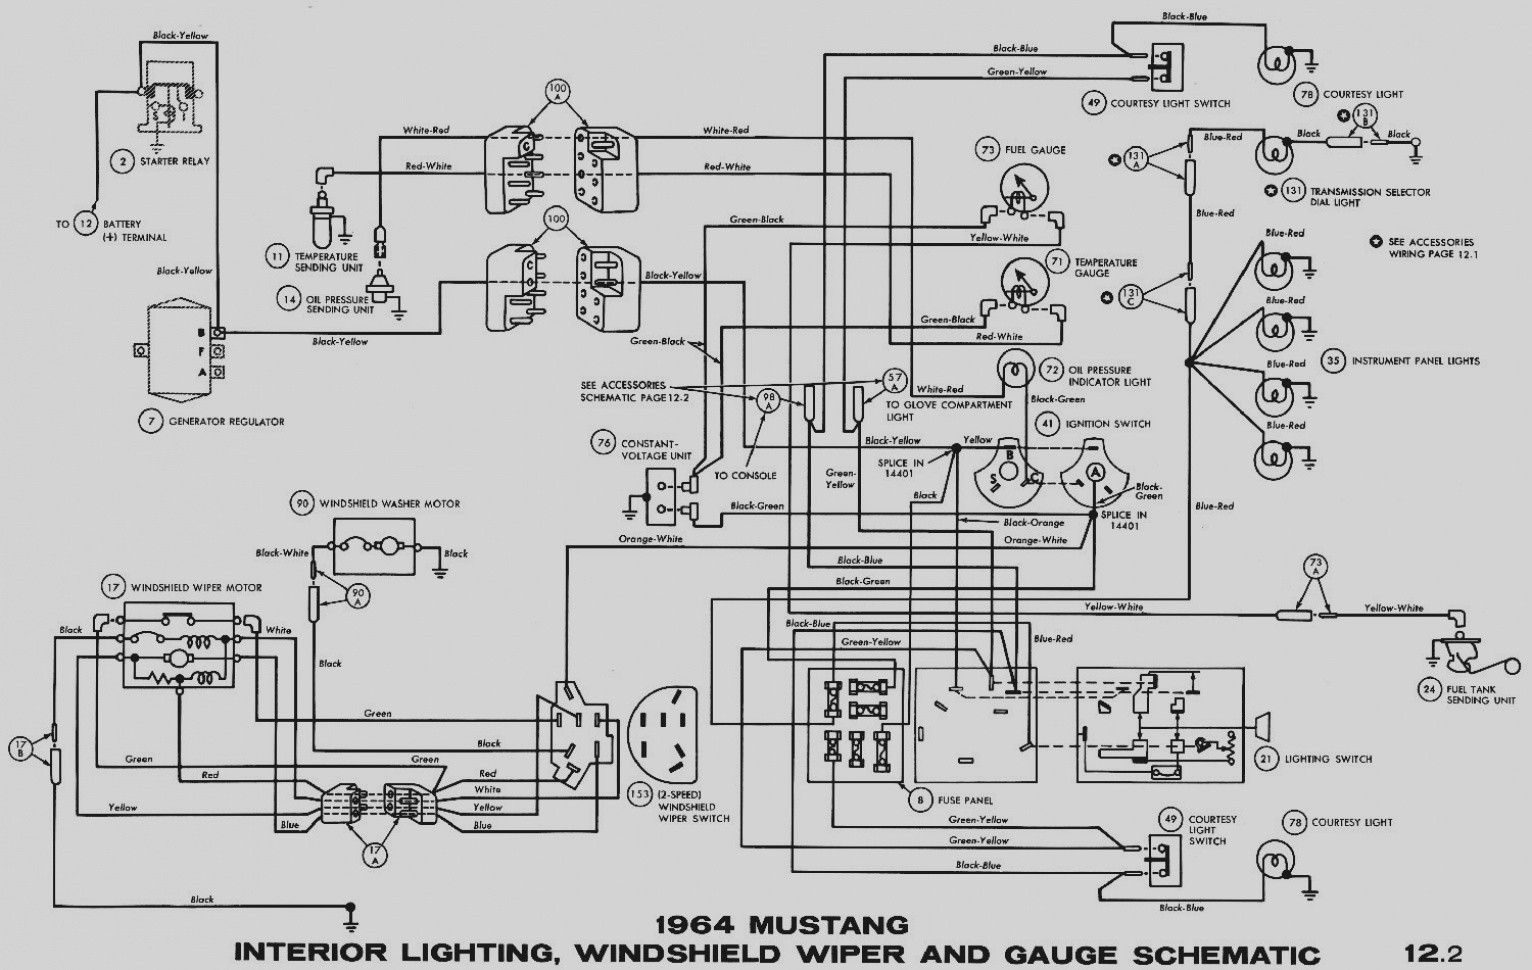 wiring diagram besides 1970 chevy c10 ignition switch wiring diagram rh sellfie co 1970 chevy c20 wiring diagram 1970 chevrolet wiring diagram